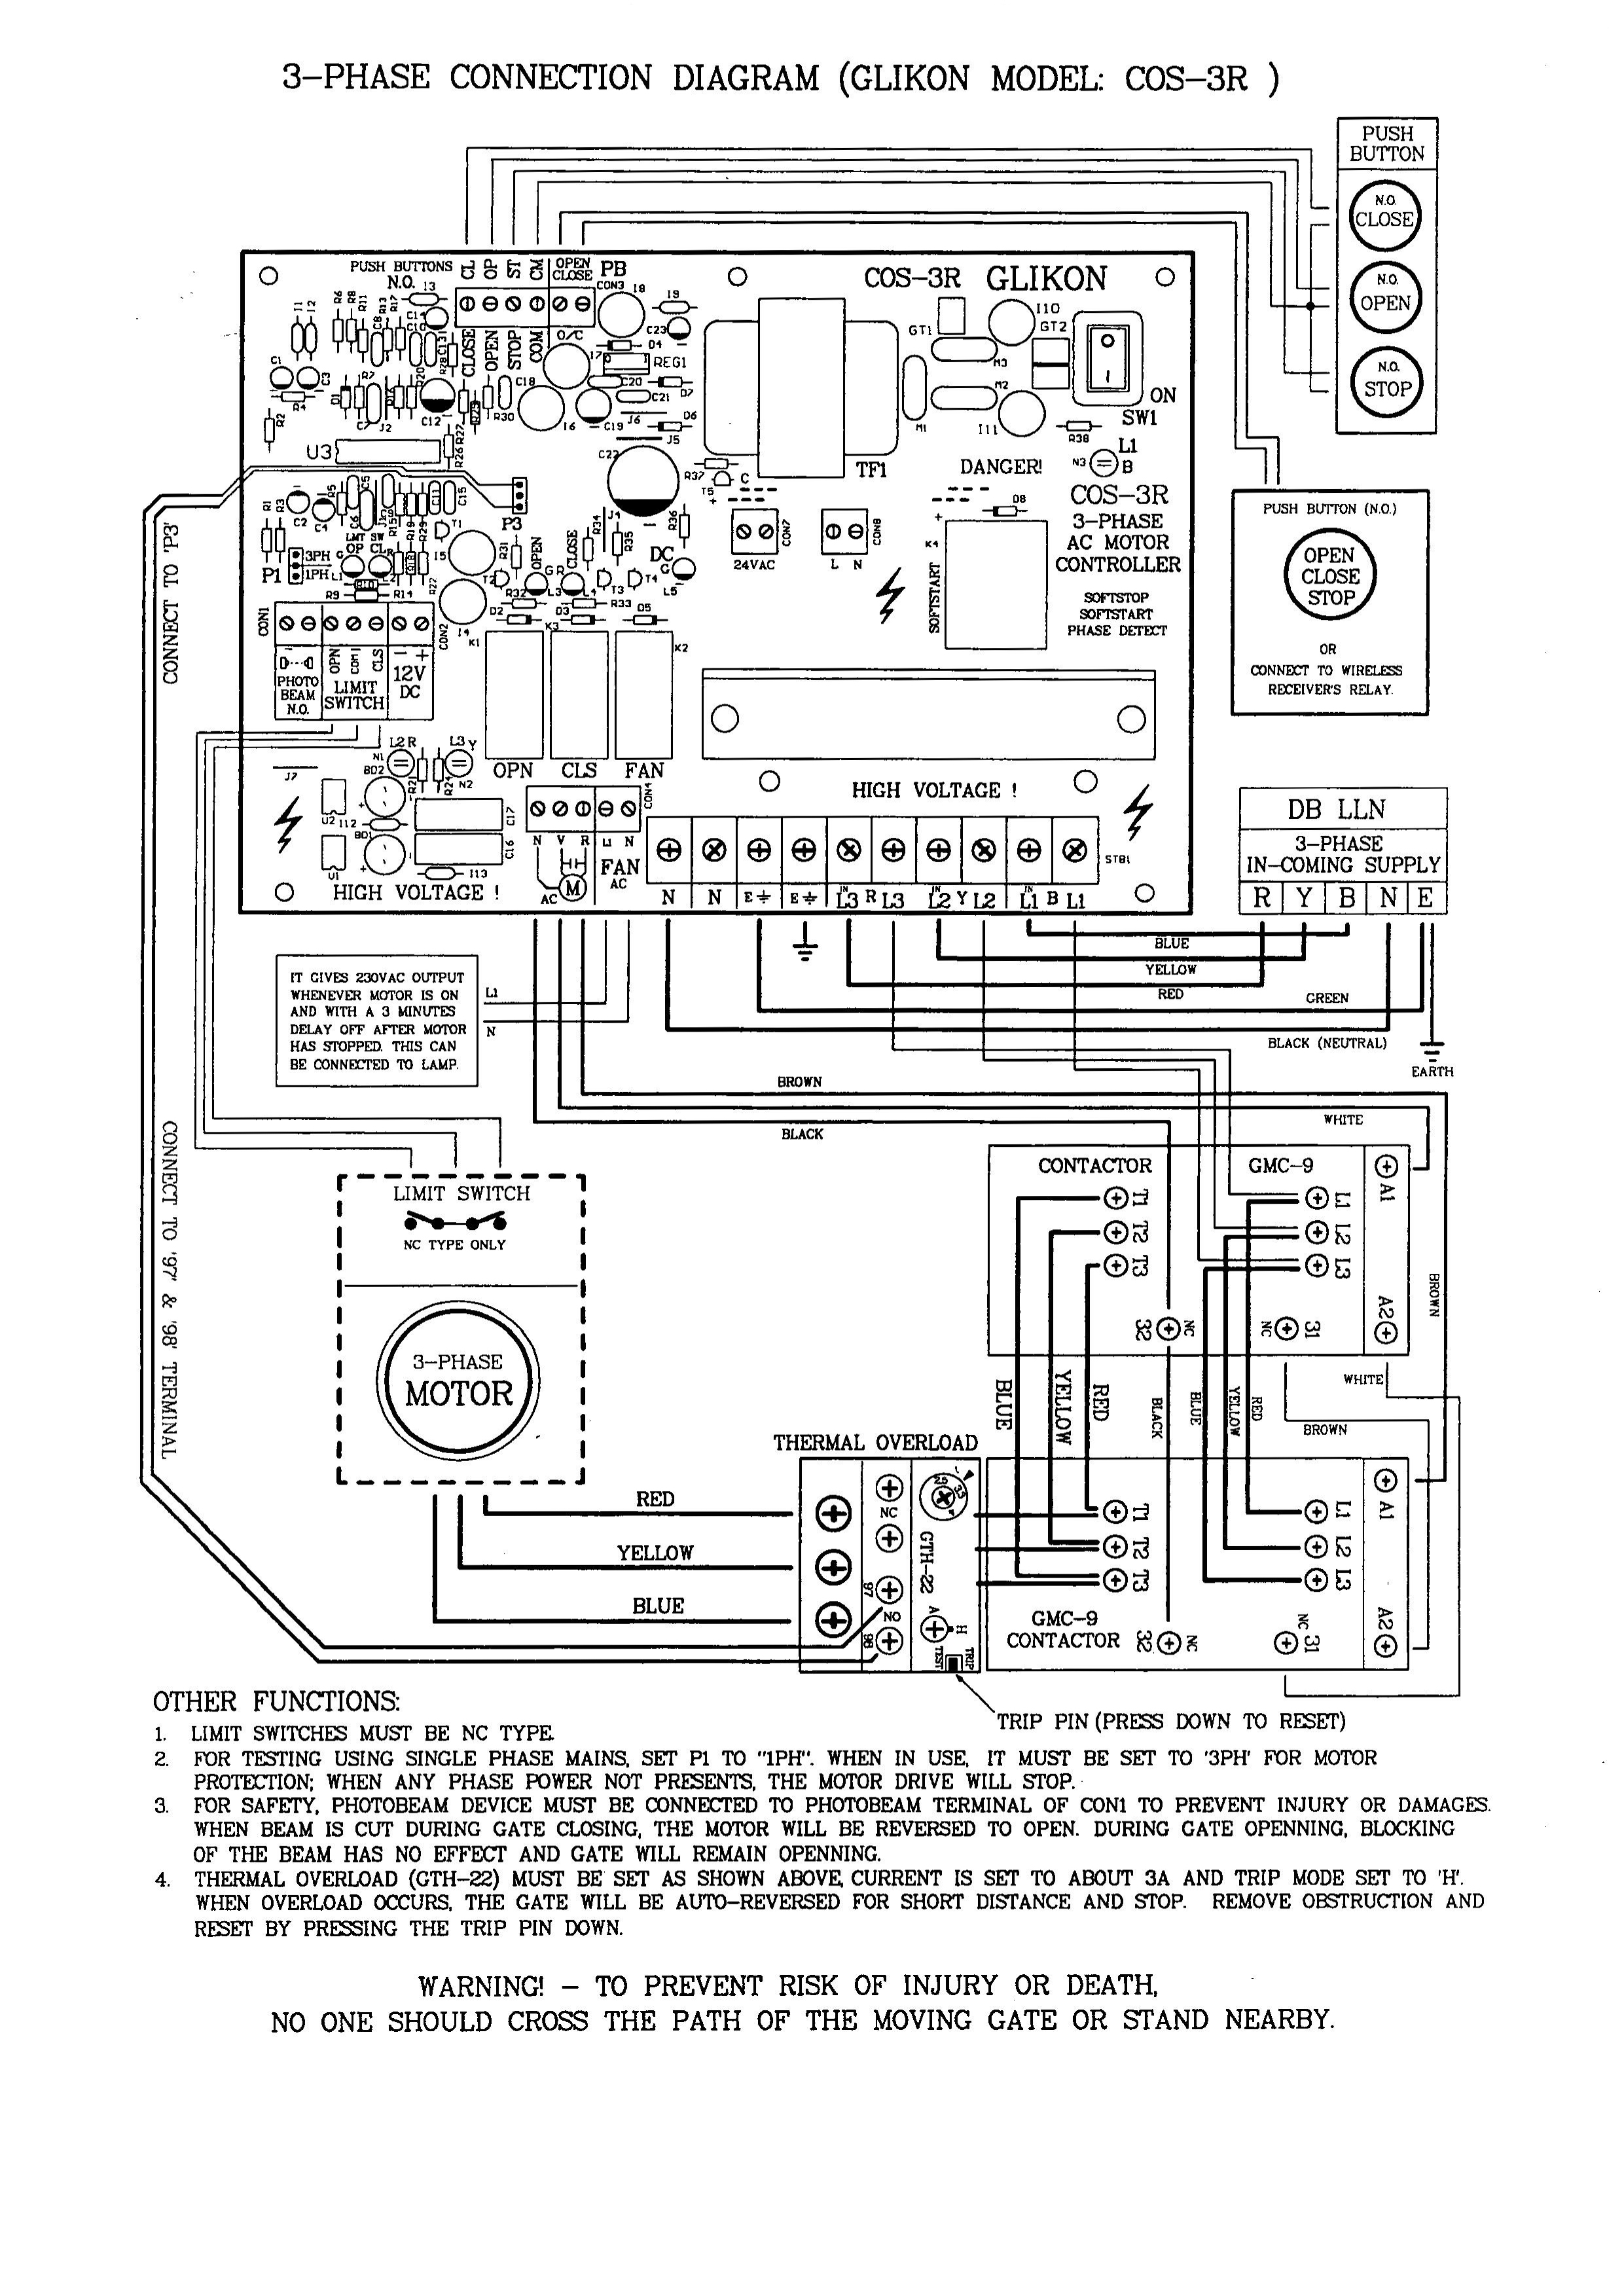 Gate actuator wiring diagram free download wiring diagram aleko gate opener wiring diagram swing gate wiring diagram double gate actuator wiring diagram motor operated valve wiring diagram of butterfly linear cheapraybanclubmaster